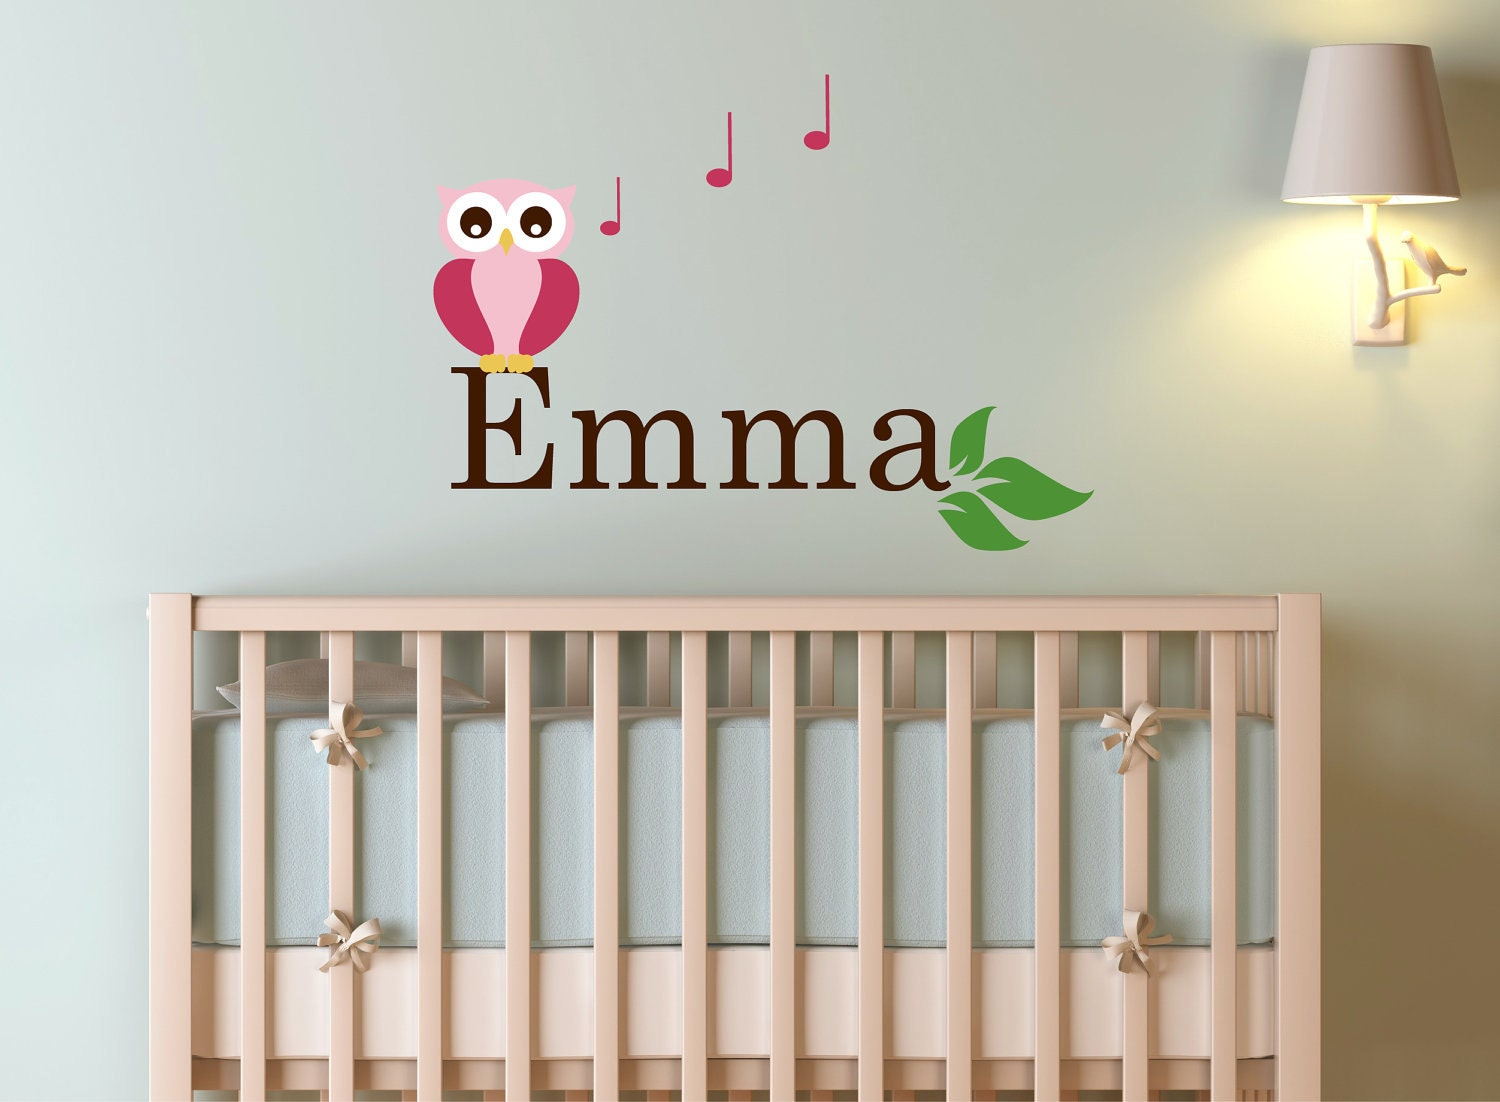 Childrens name wall stickers gallery home wall decoration ideas childrens wall stickers australia images home wall decoration ideas baby name wall stickers australia 28 images amipublicfo Image collections